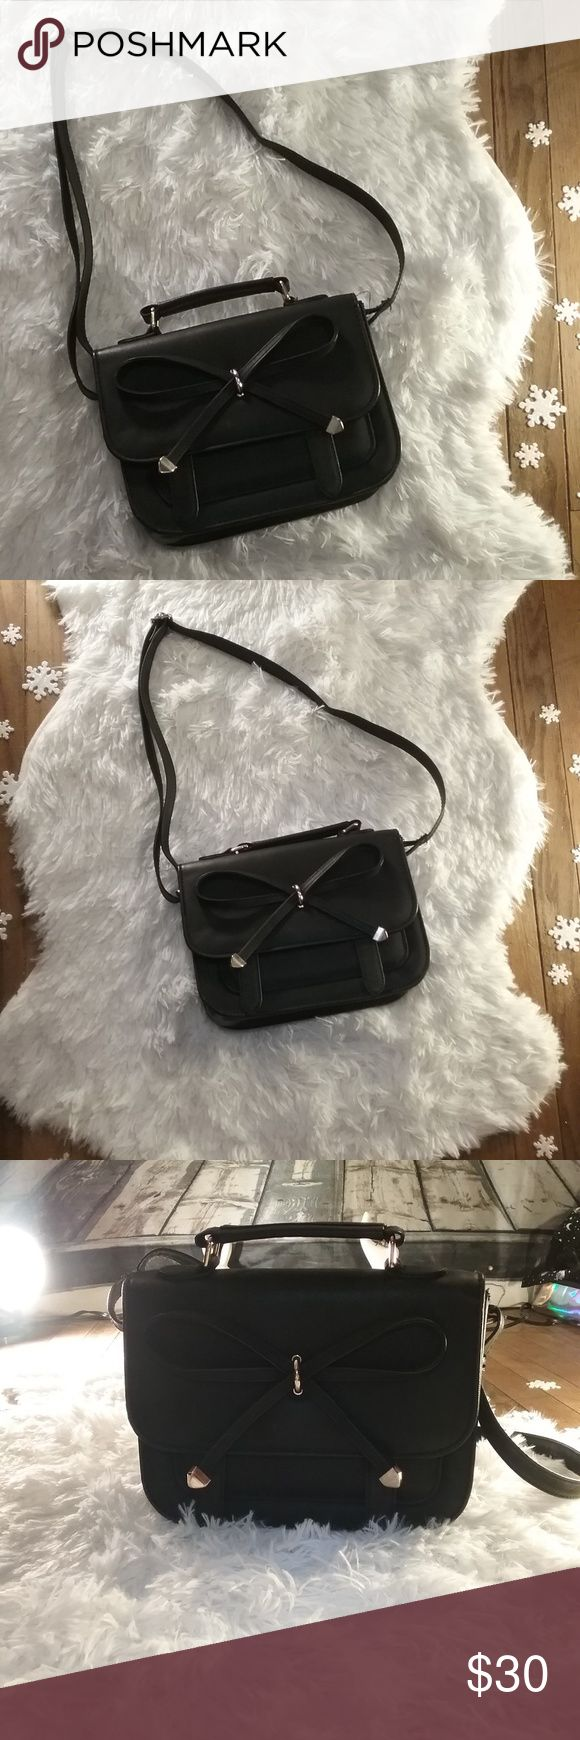 "ASOS Bow Satchel Bag ASOS Bow Satchel Bag Matte Black, Excellent Condition, & Absolutely Gorgeous! 100% Polyurethane, Leather-look Fabric H: 17cm/7"" W: 23cm/9"" D: 9cm/4""  Not a Poshmark member yet? Enter referral code WHTELEPHNTRVIVL while setting up your account and get $5 off your first purchase! ASOS Bags Satchels"